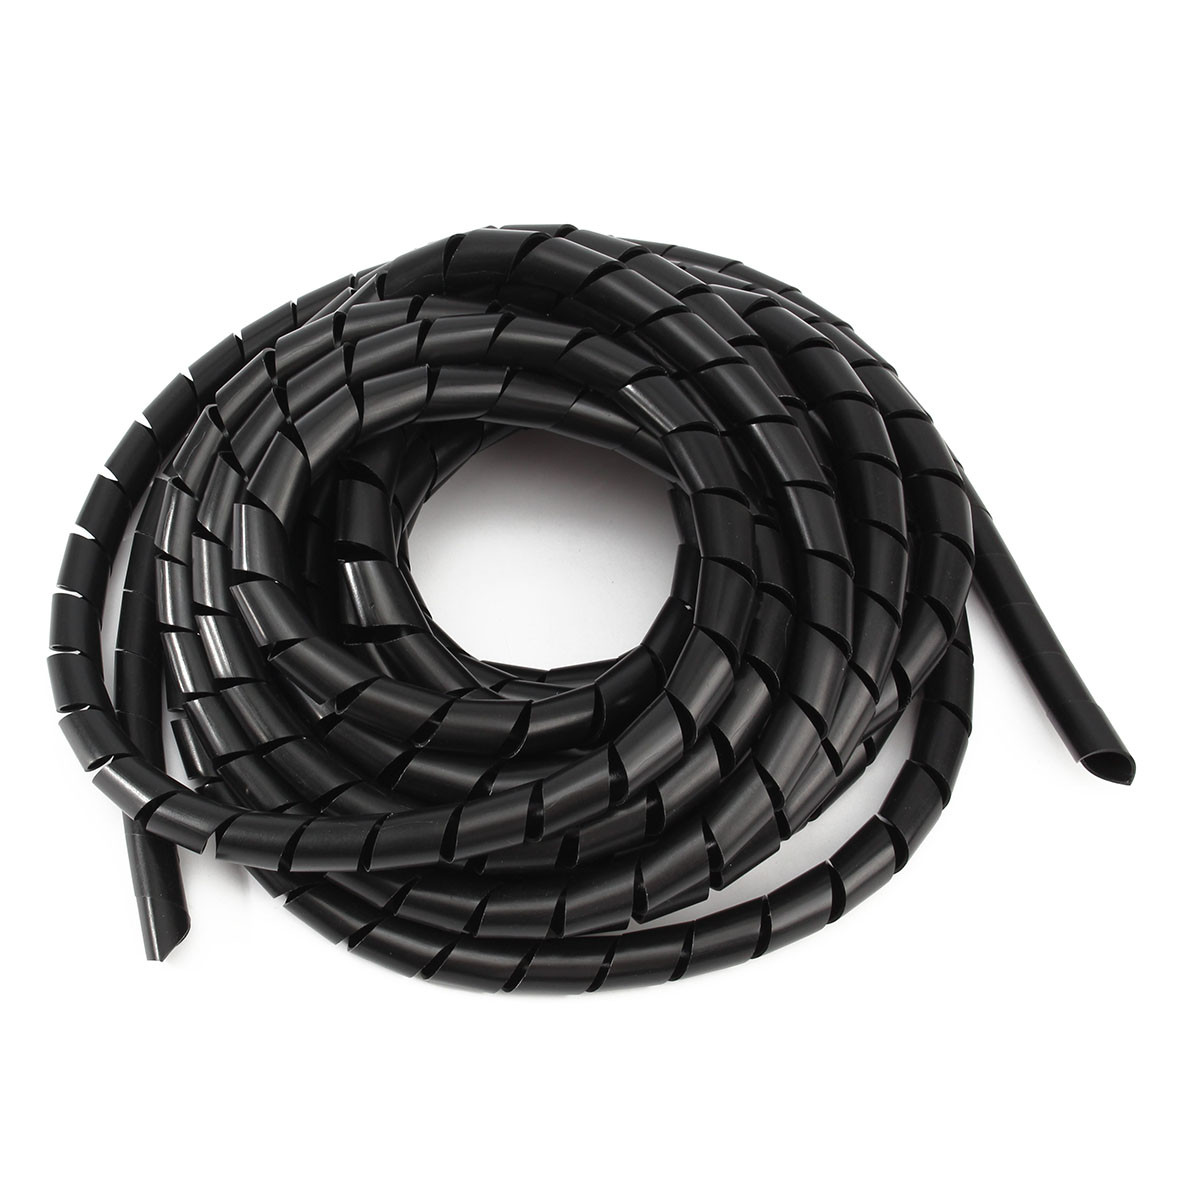 Cable Tube Black Spiral Polyethylene Cable Electrical Wire Wrap Tube